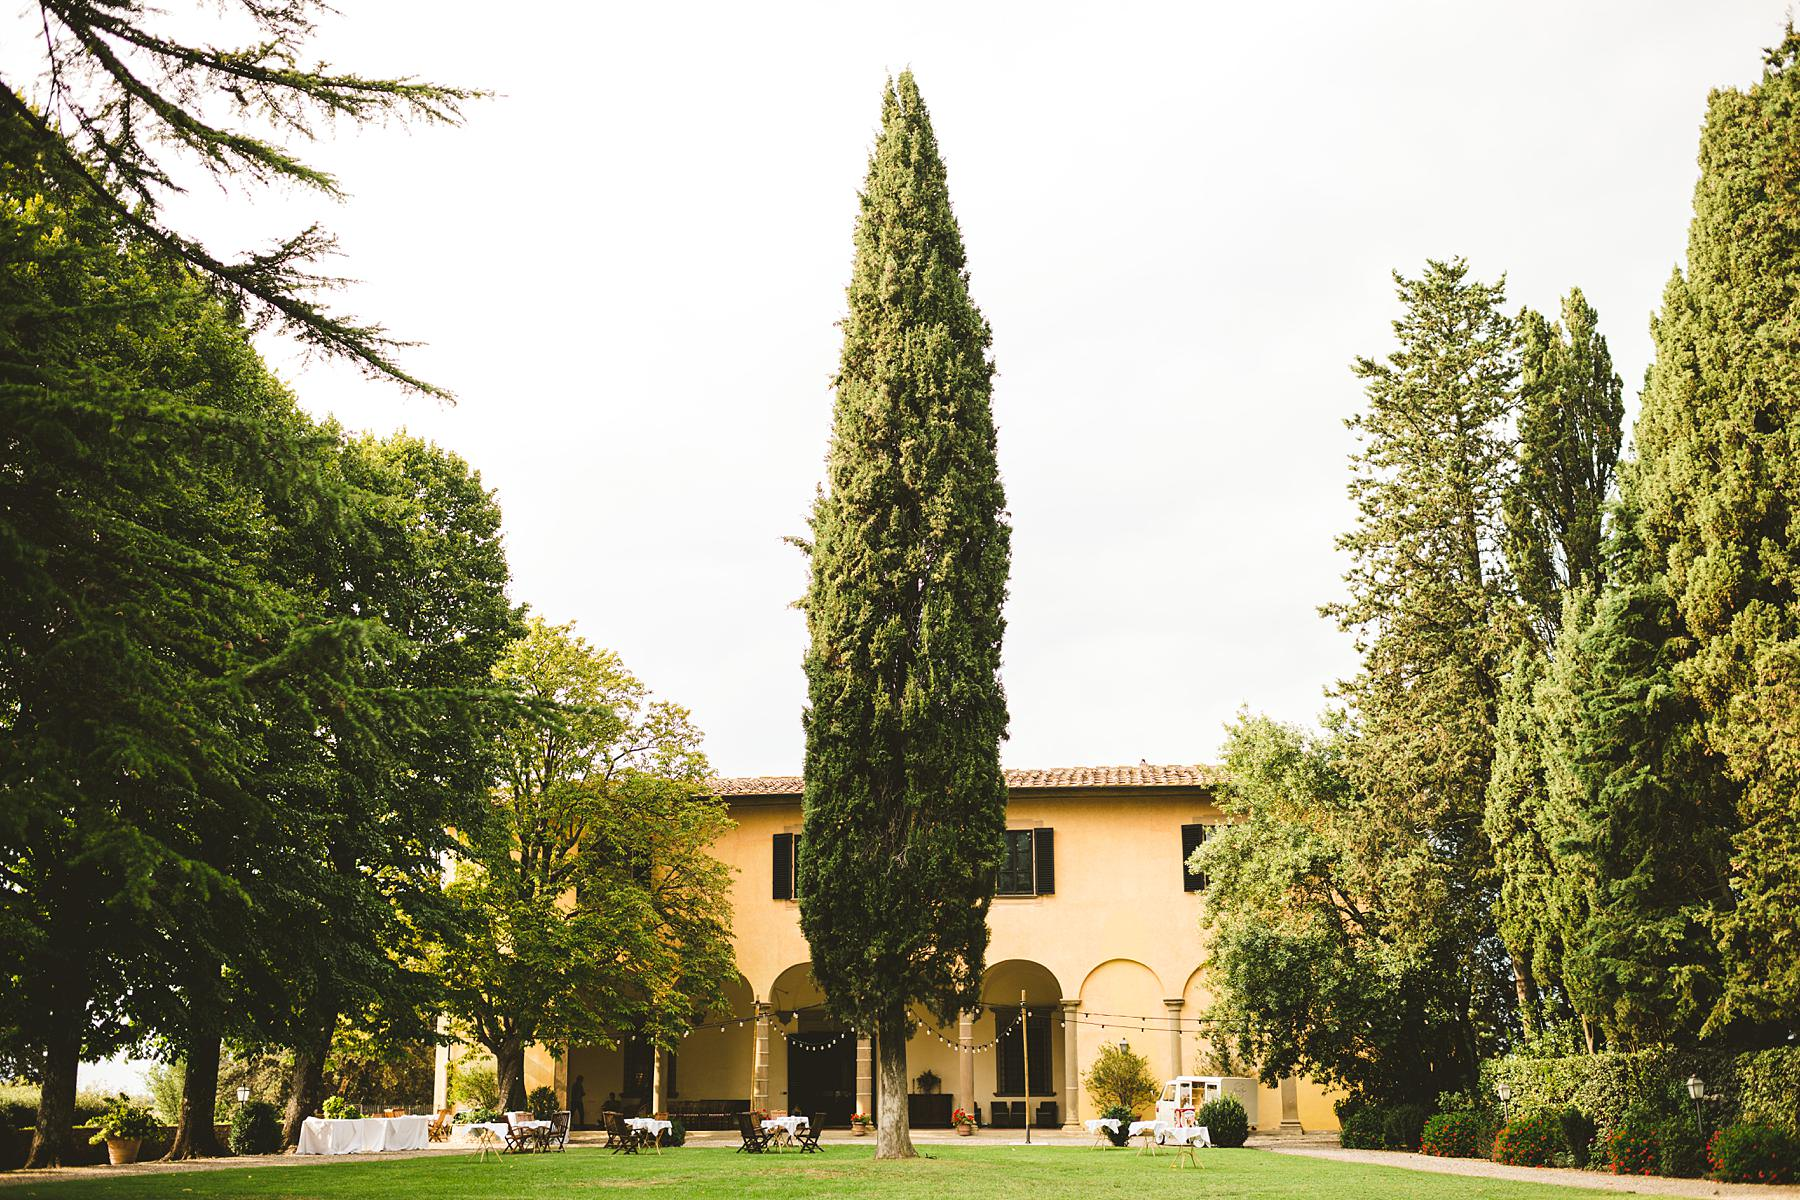 Villa Il Poggiale is a historical residence that first saw the light in the Renaissance. Embraced by the unique and unforgettable scenery of Chianti, when youÕre there you will feel like youÕre part of a fairytale